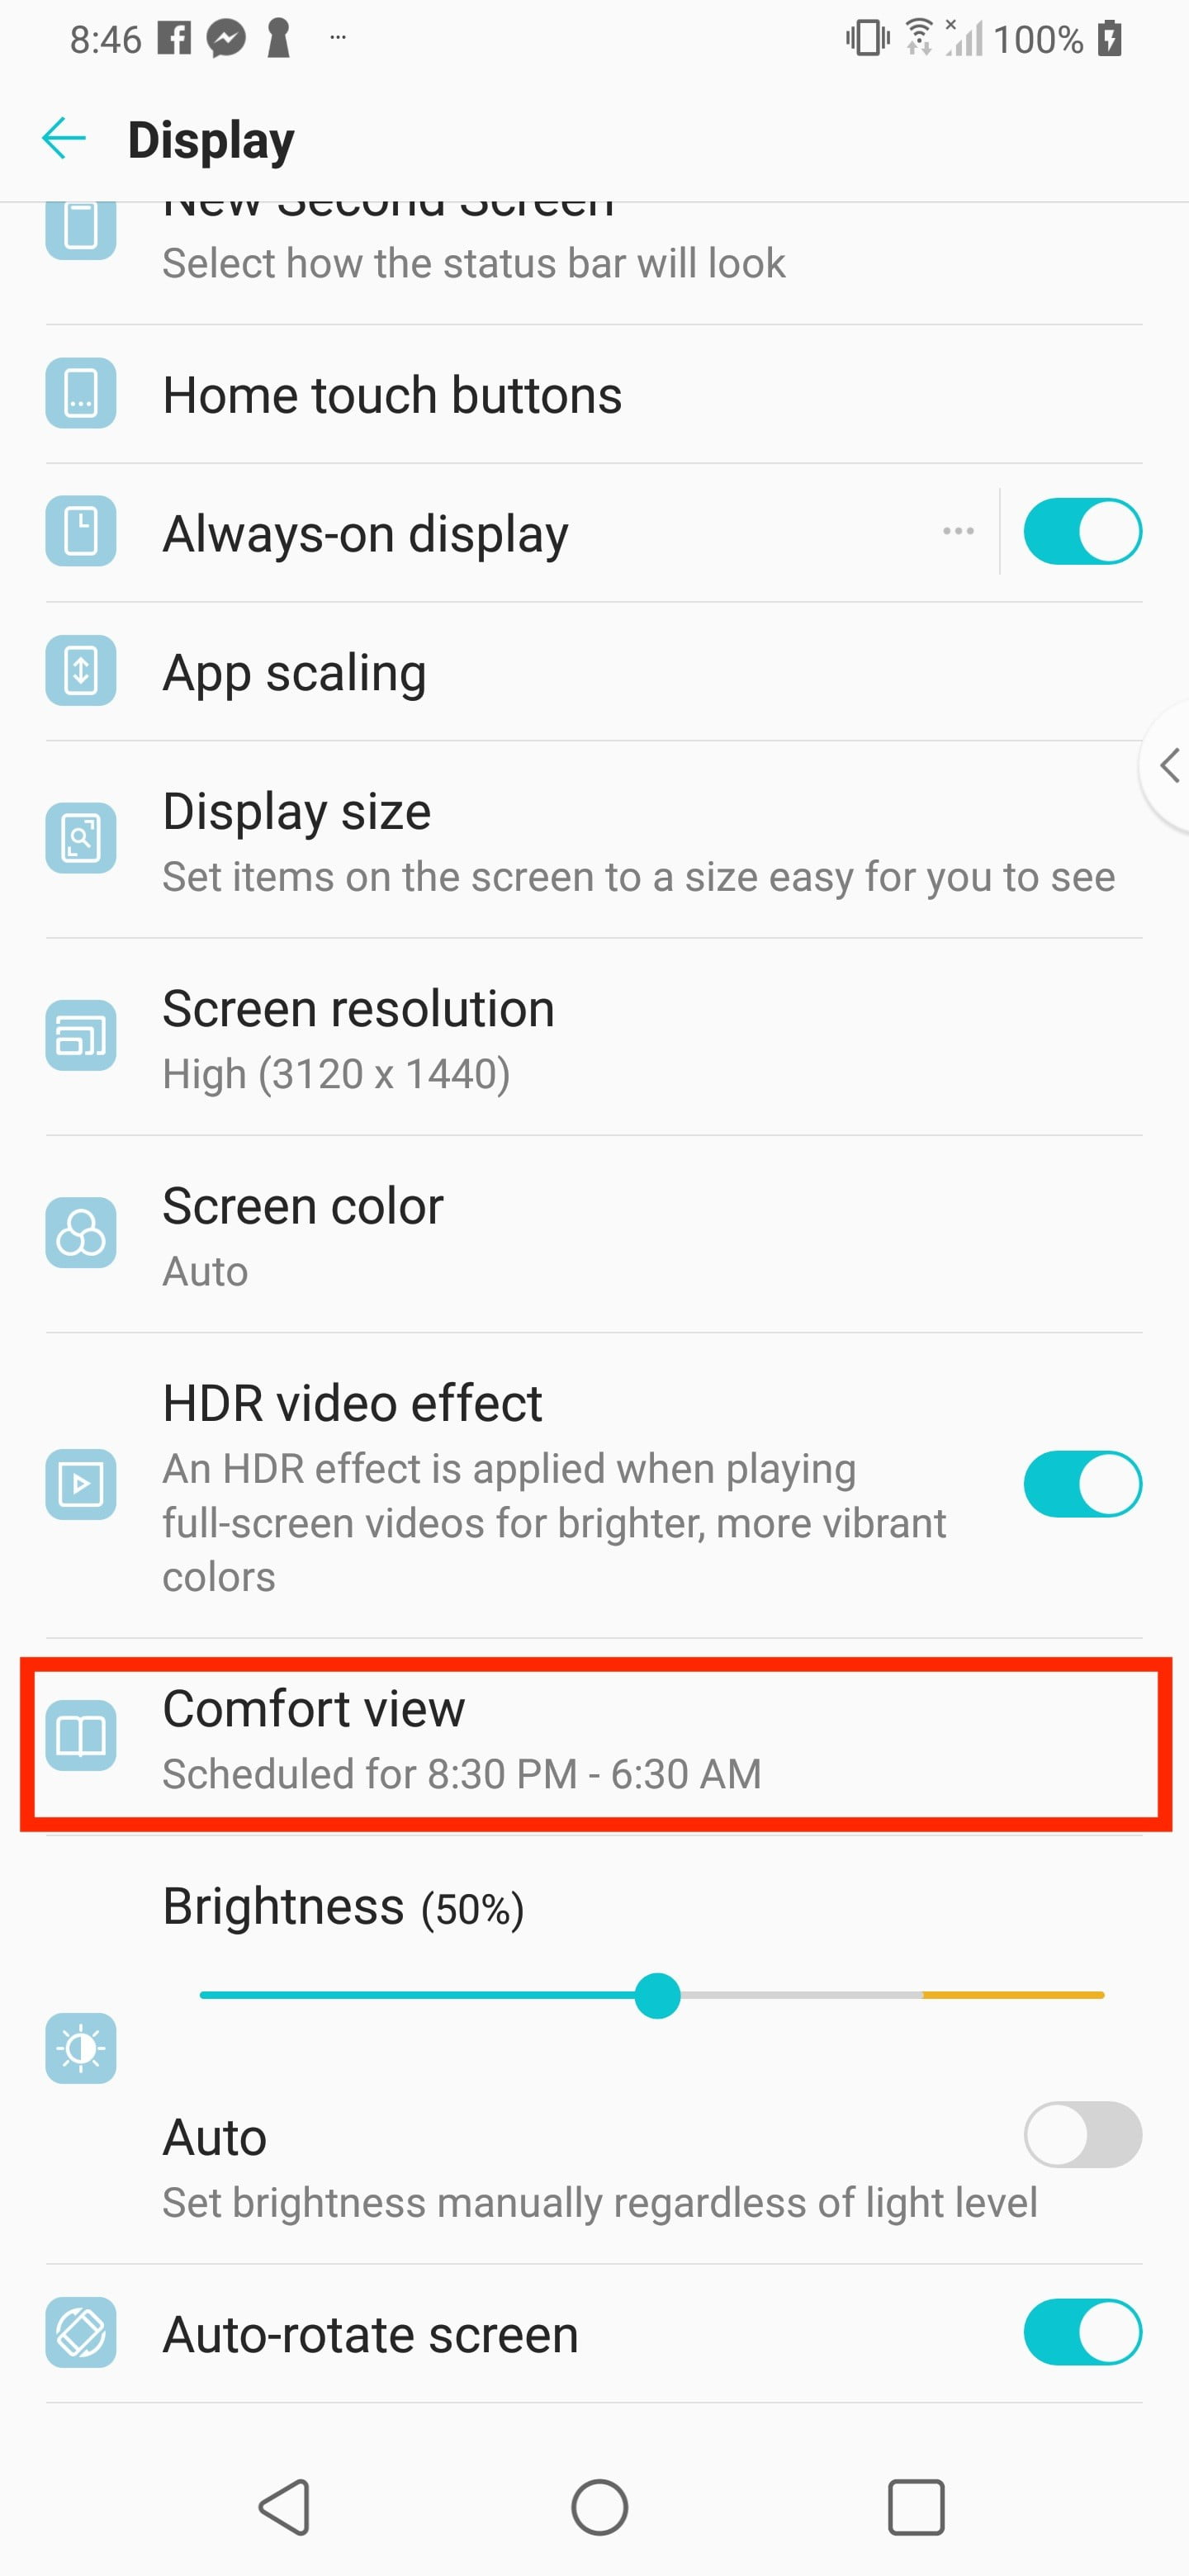 Key Settings You Need to Change on Your Brand-new LG V40 ThinQ